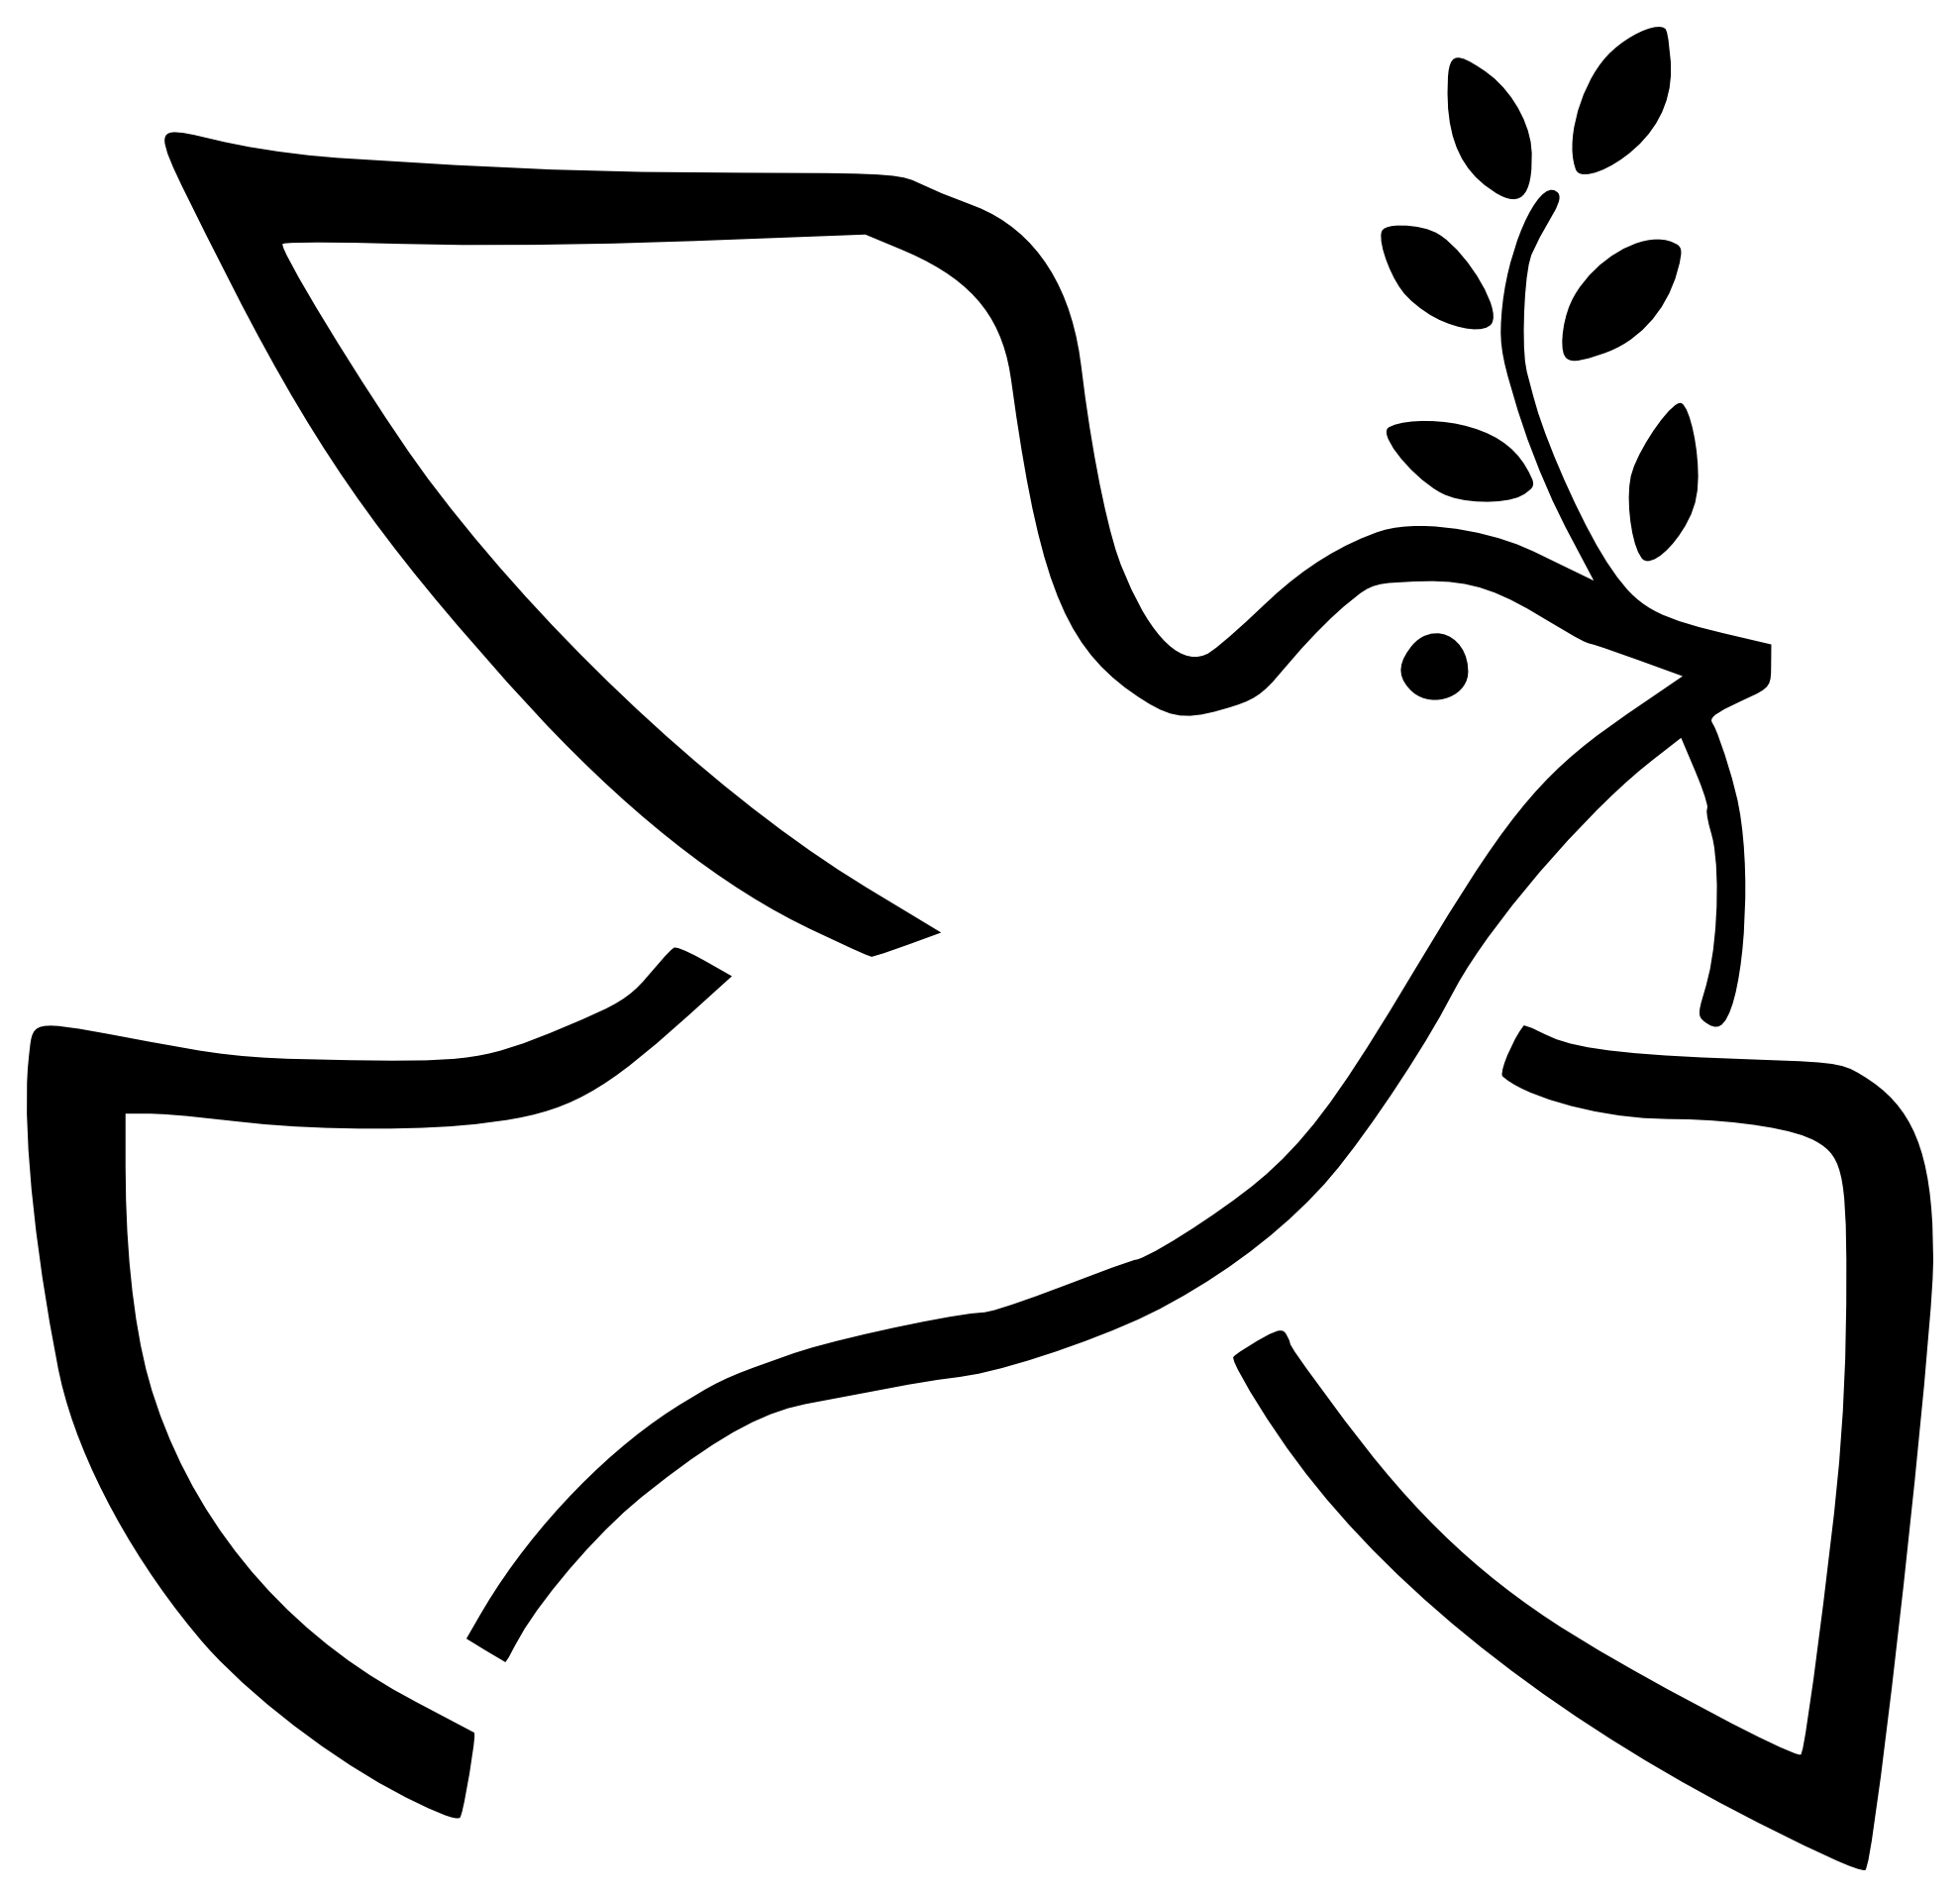 Free Peace Clipart Black And White, Download Free Clip Art.